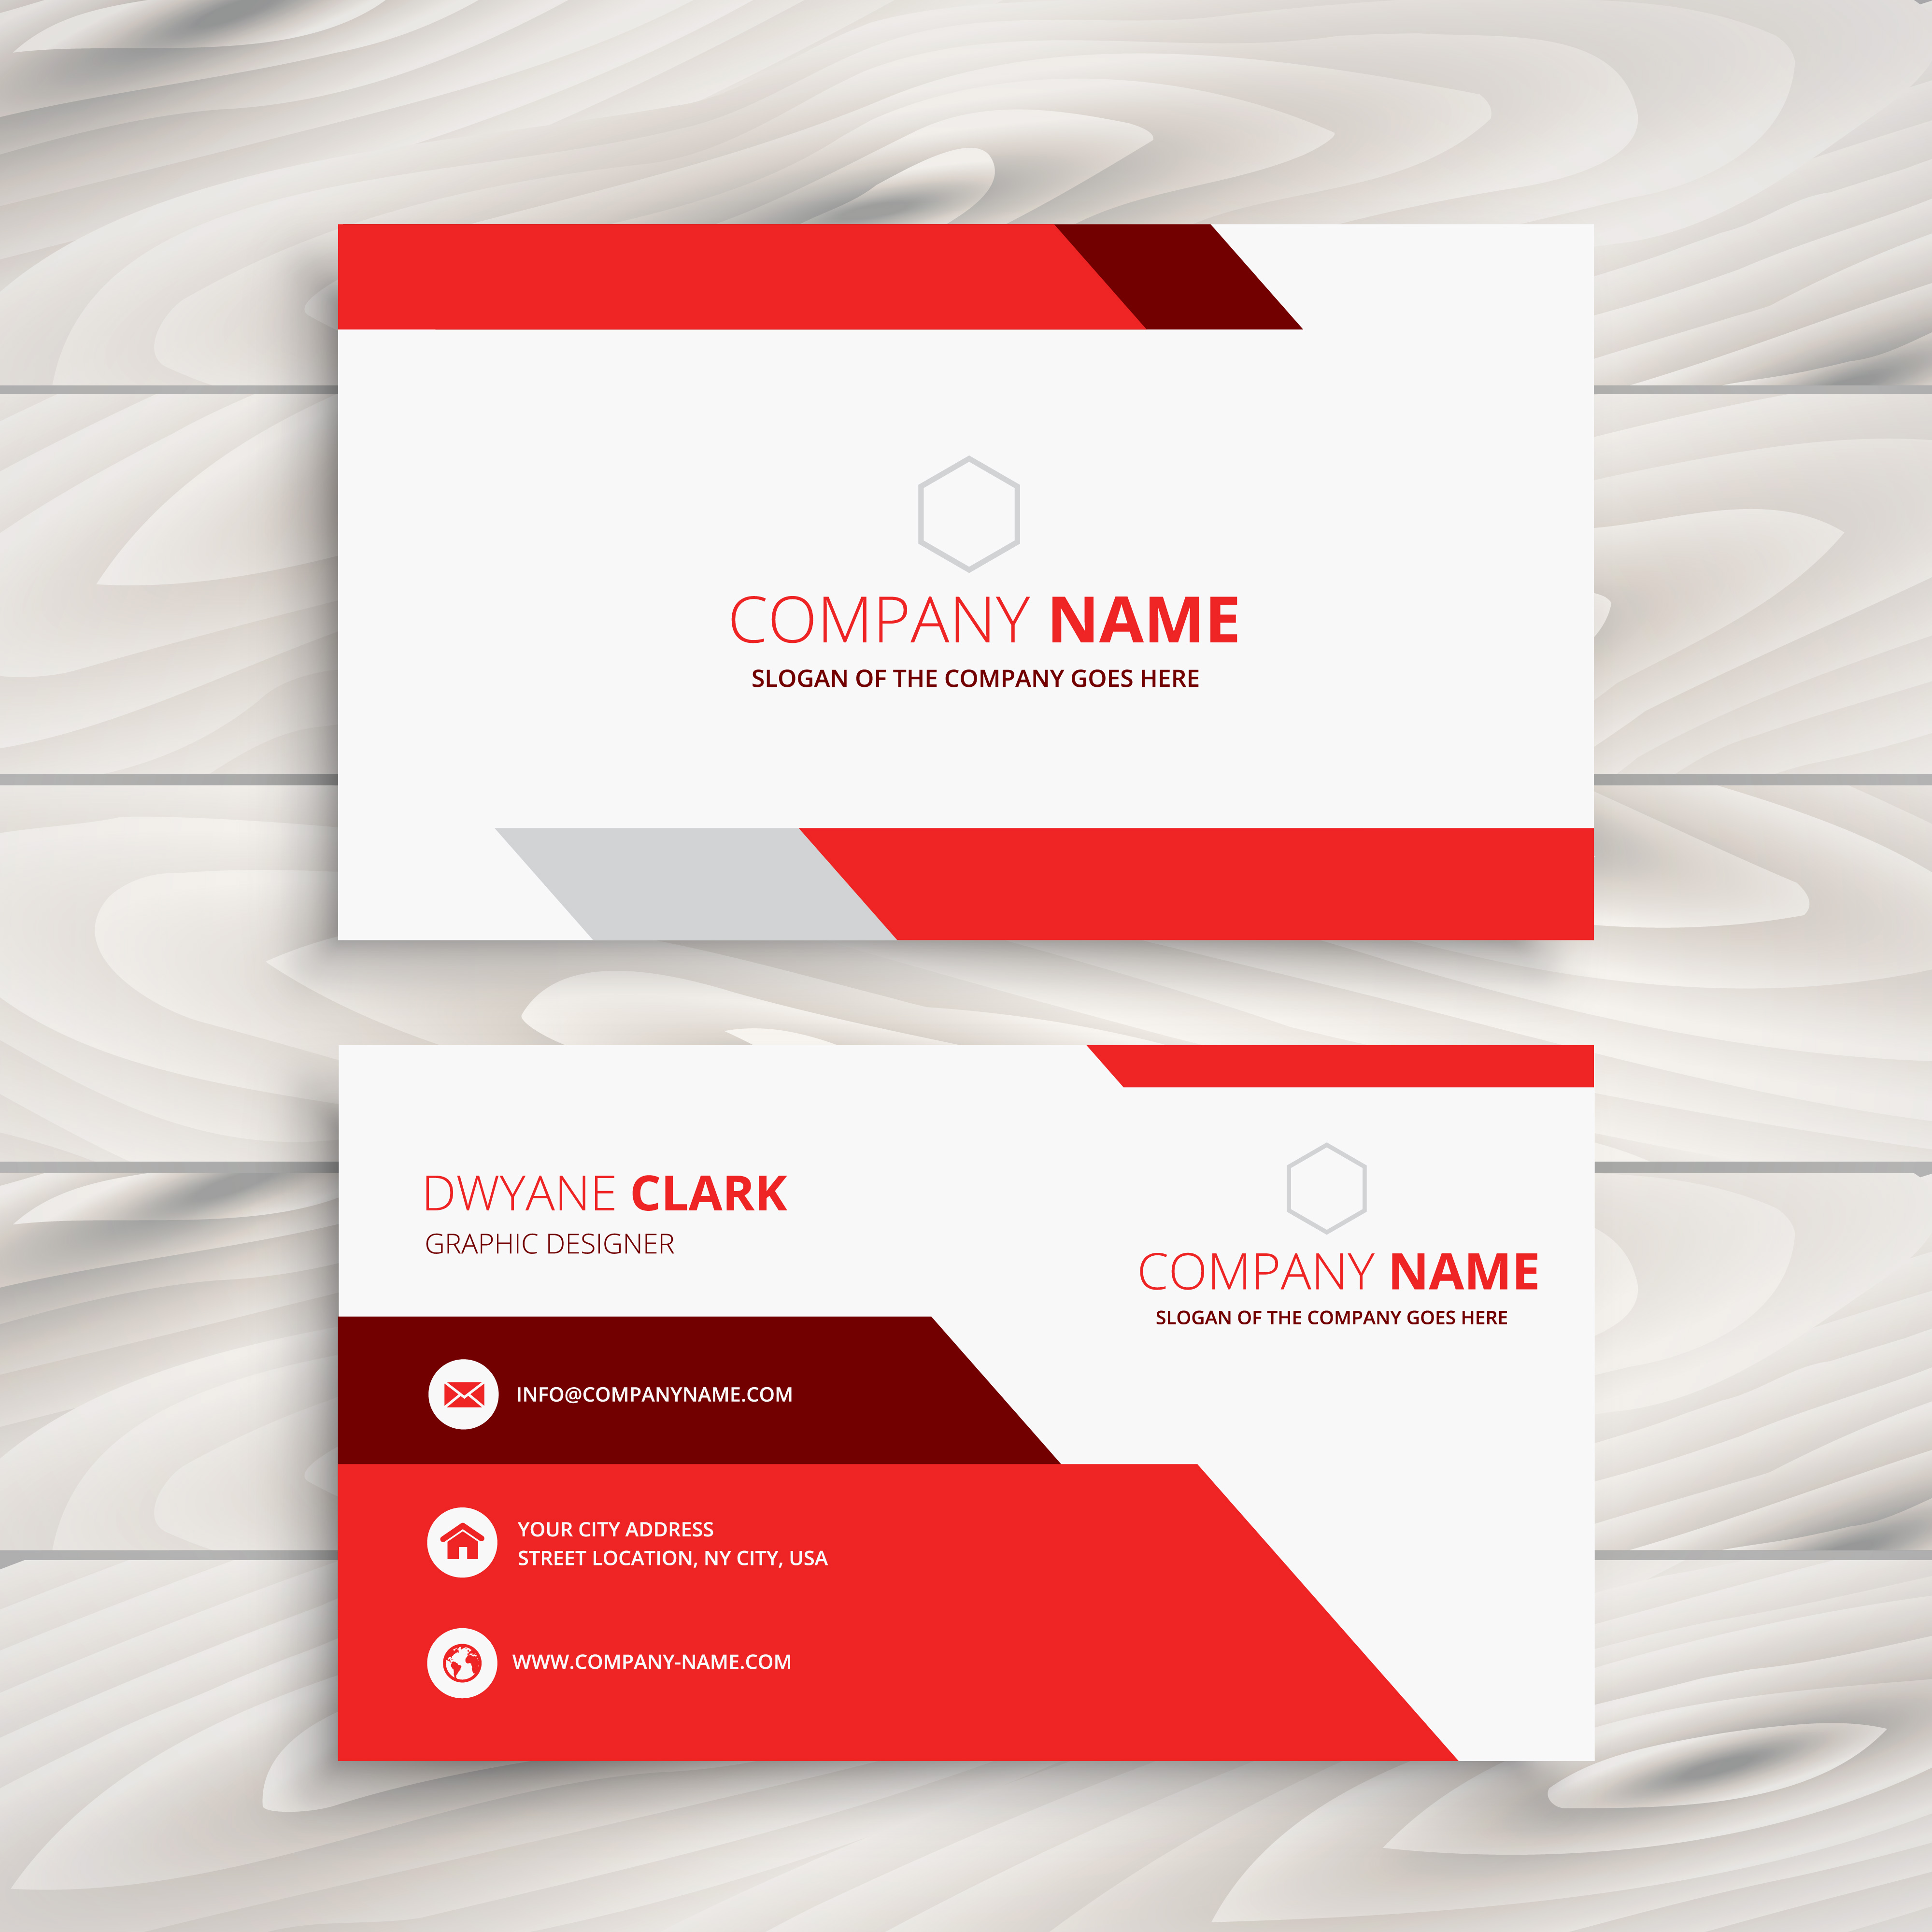 Free Business Card Design Templates: Red Modern Business Card Template Vector Design